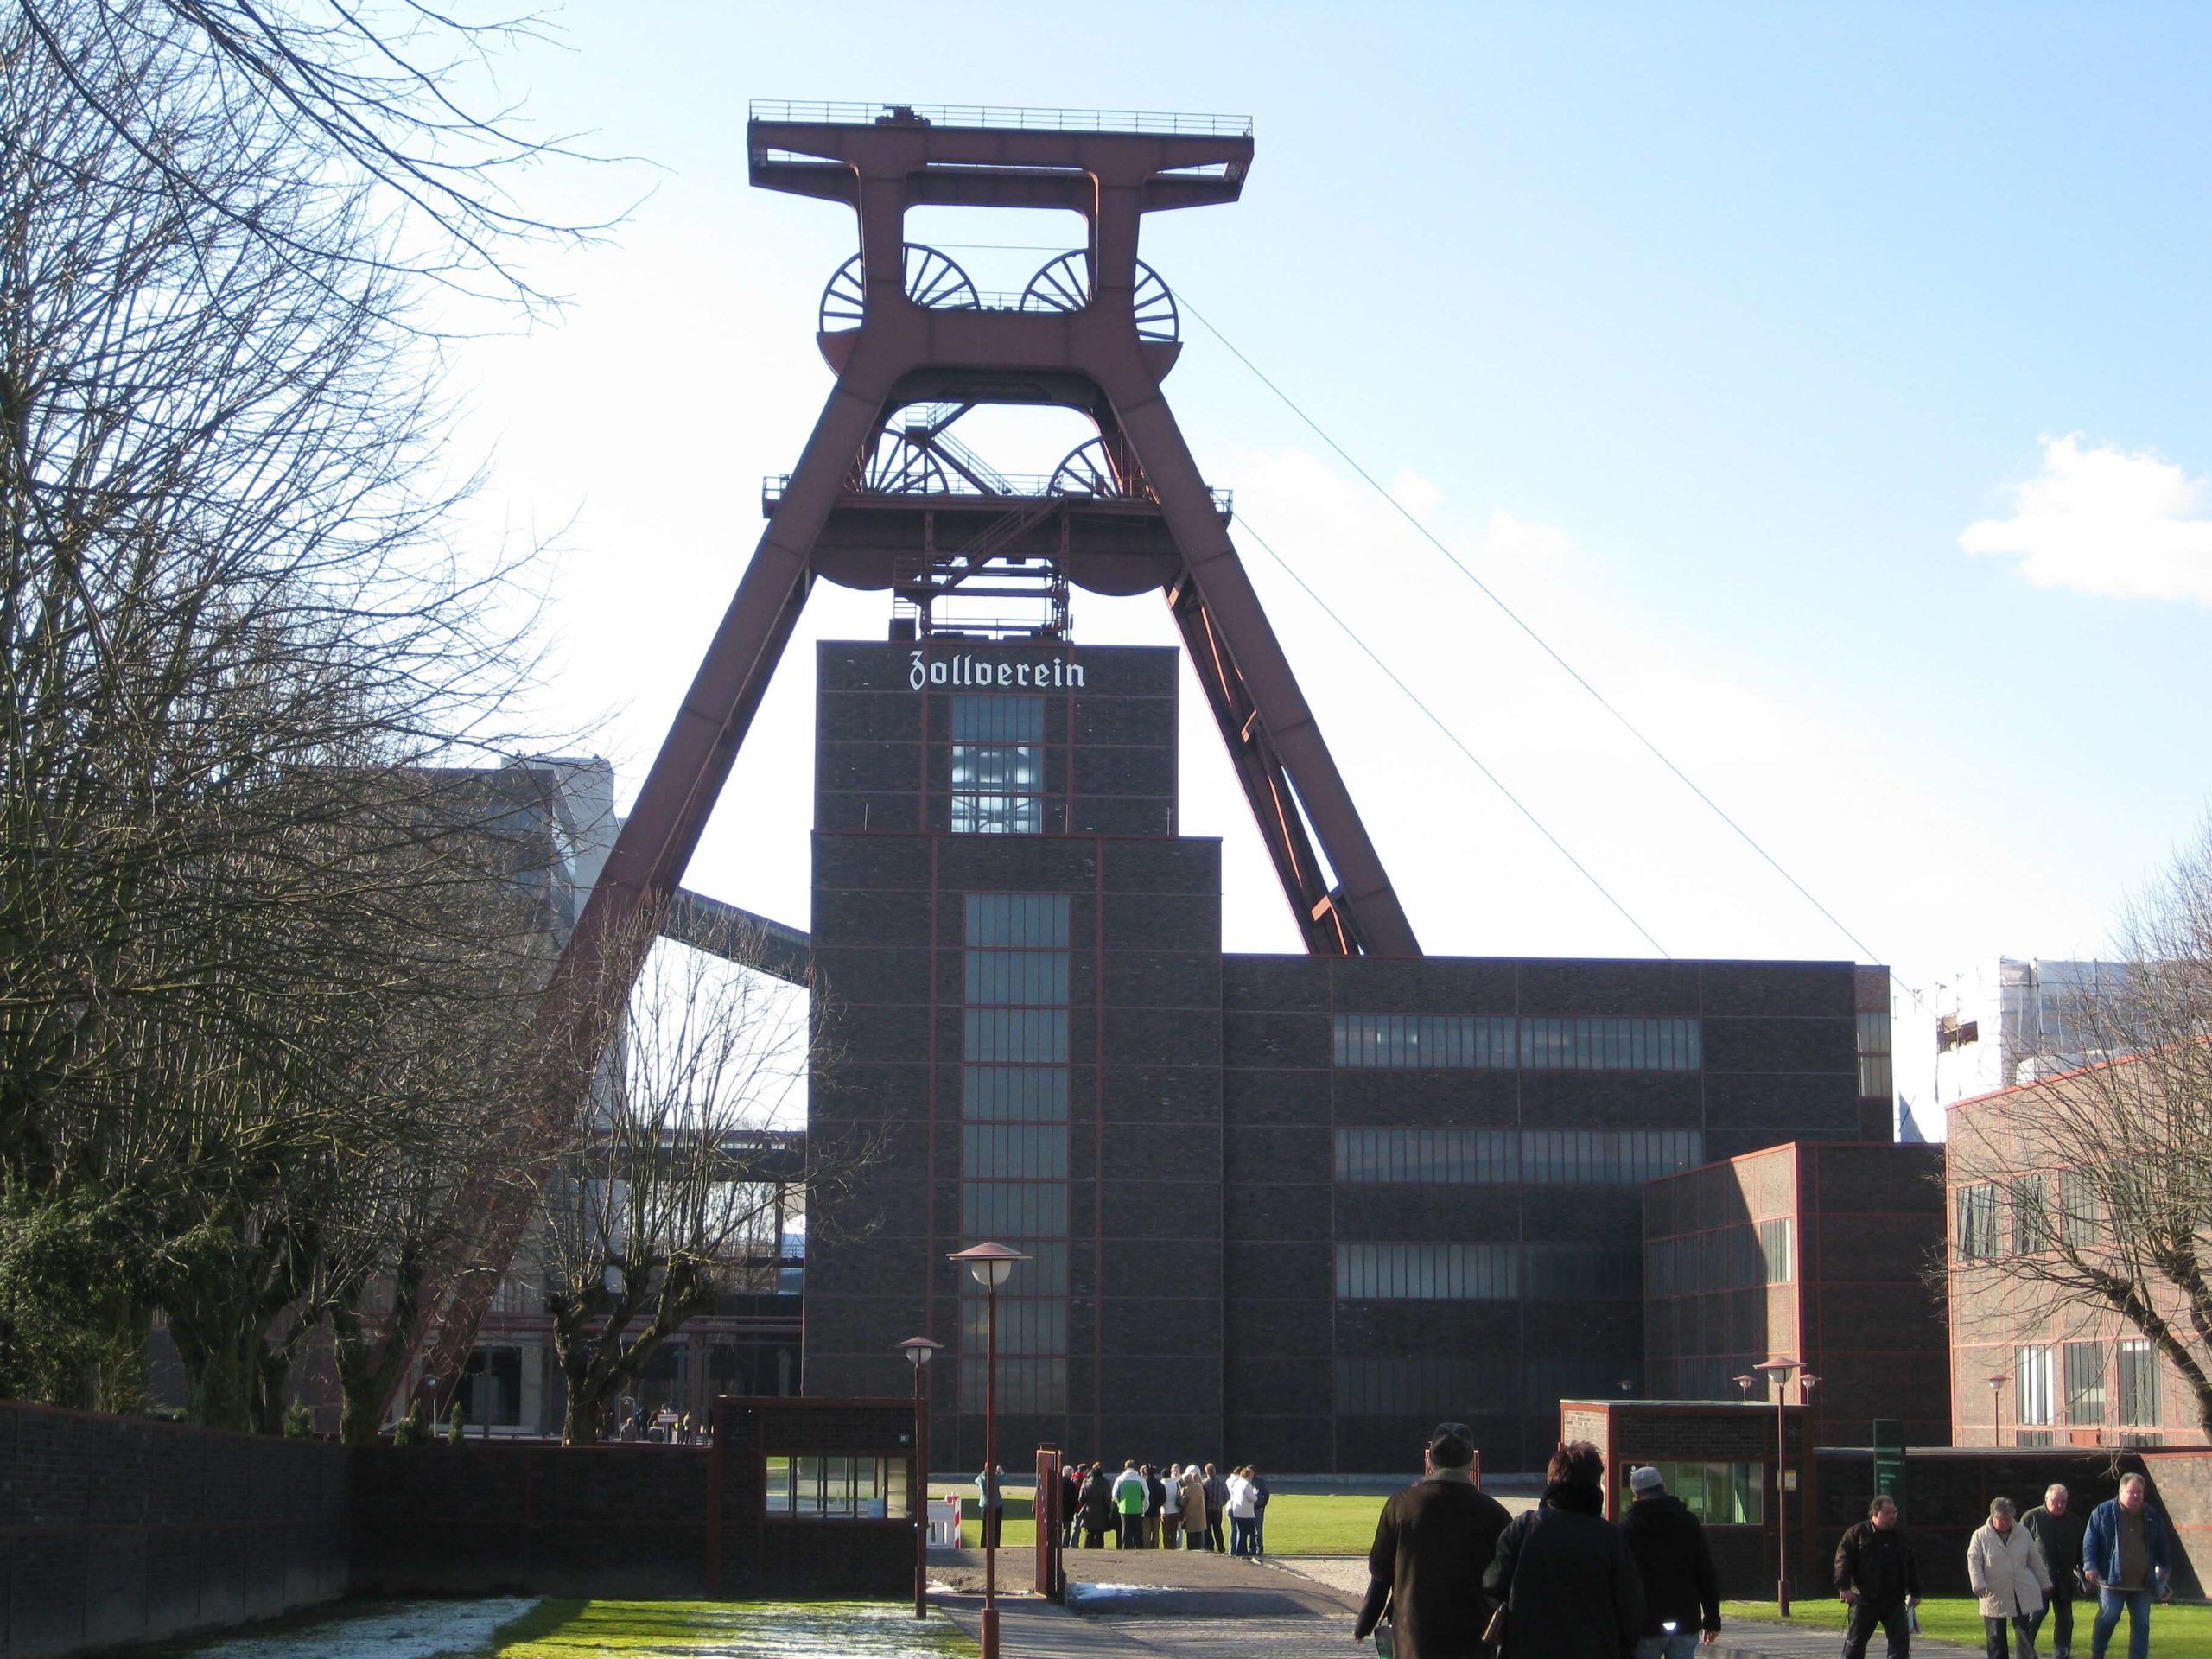 The Ruhr Industrial Area – Germany